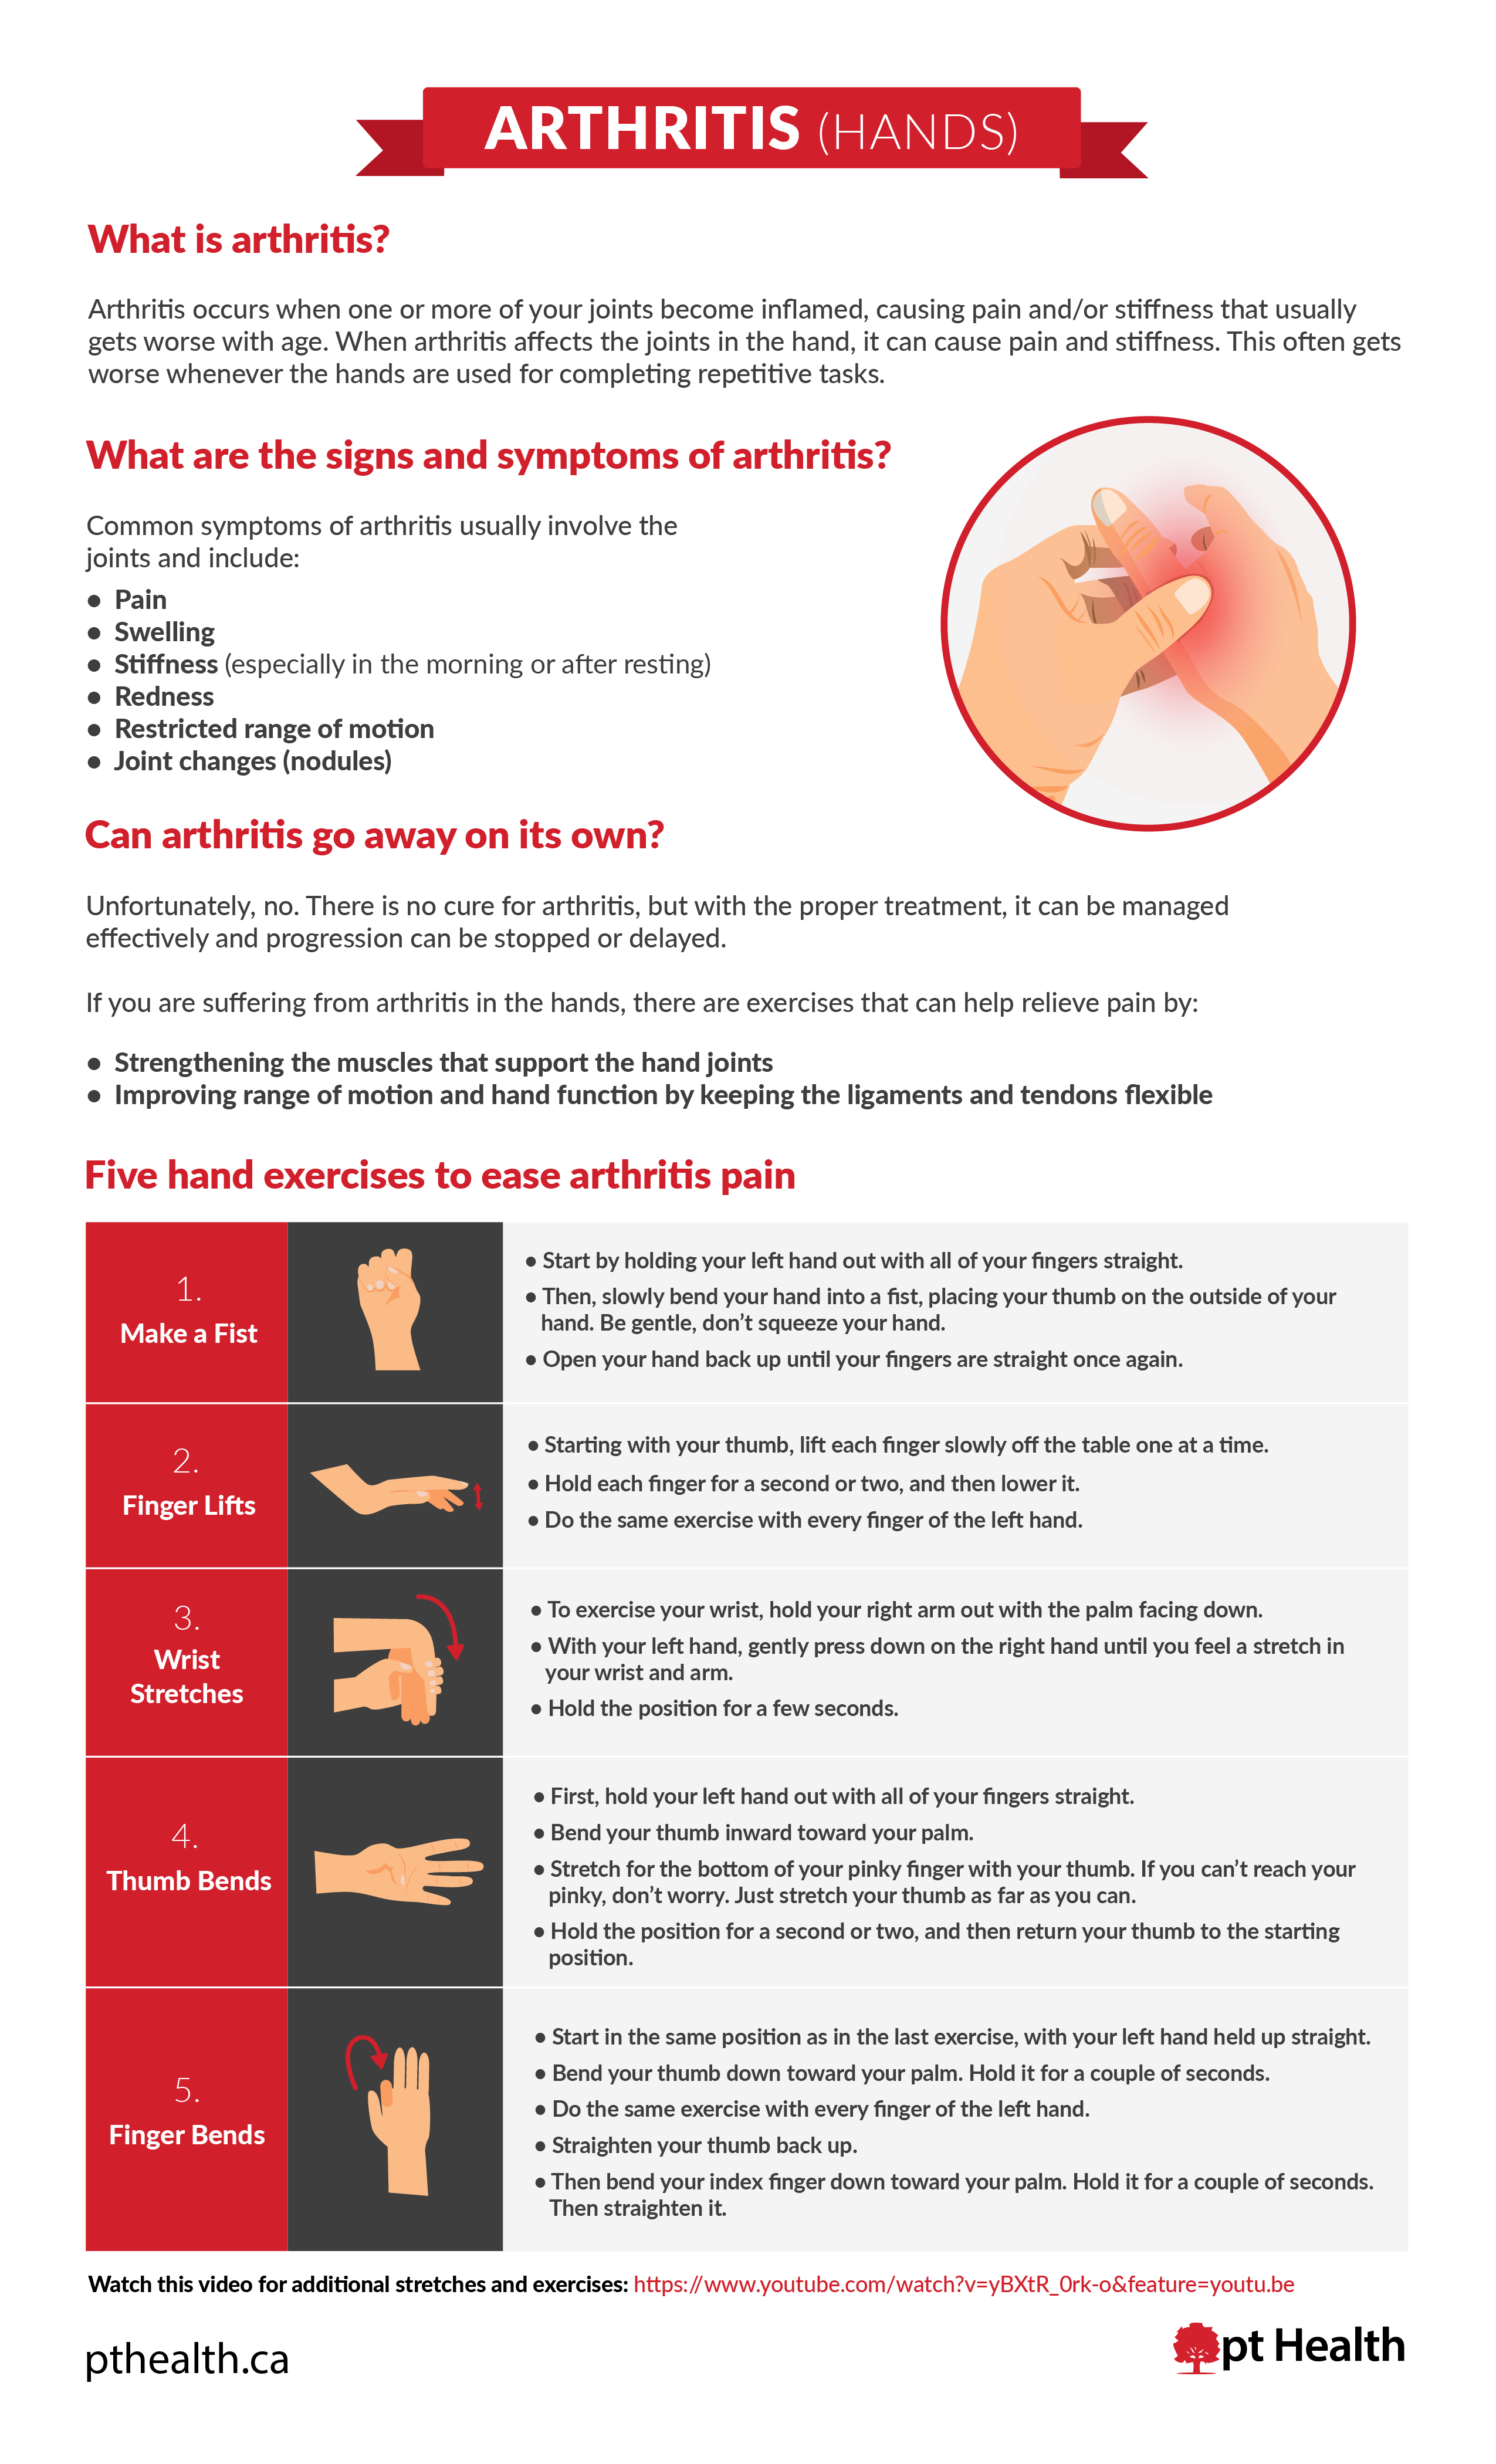 Five Hand Exercises to Ease Arthritis Pain